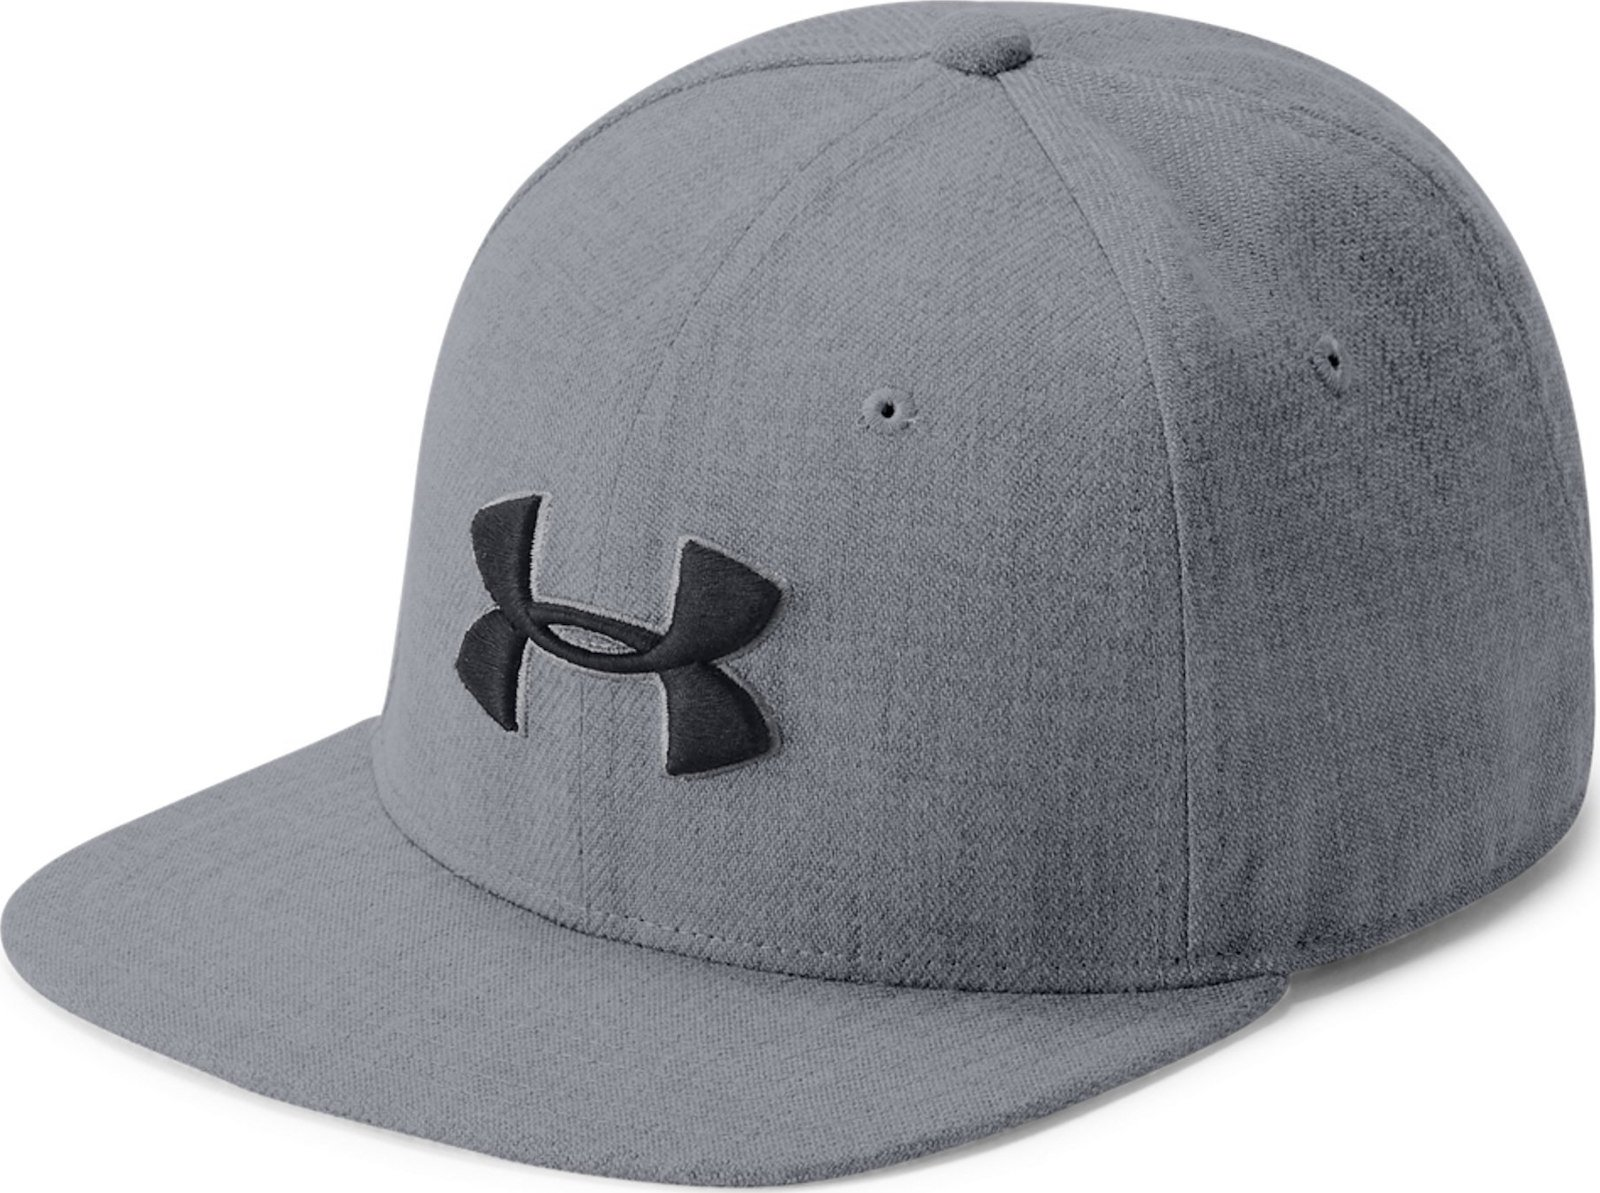 Under Armour Men's Huddle Snapback 2.0 Baseball sapka